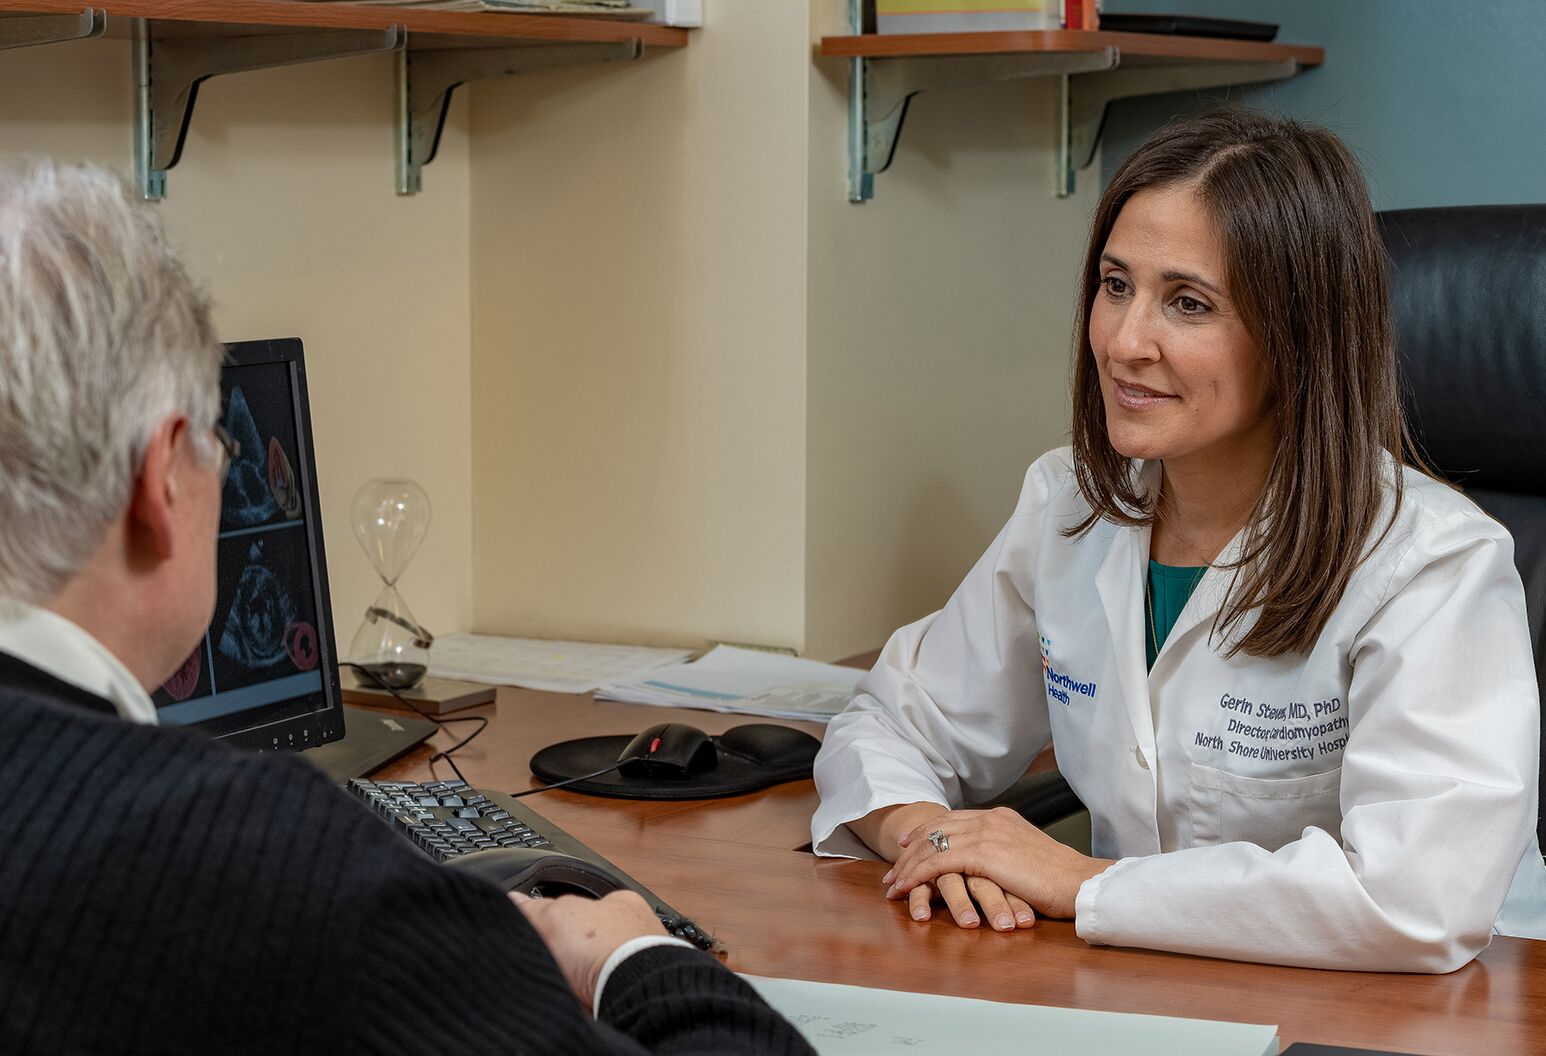 A female doctor with brown hair sits in her office across from an older male patient. She has her hands crossed on the desk and is smiling. There's a computer on the desk and an hour glass.